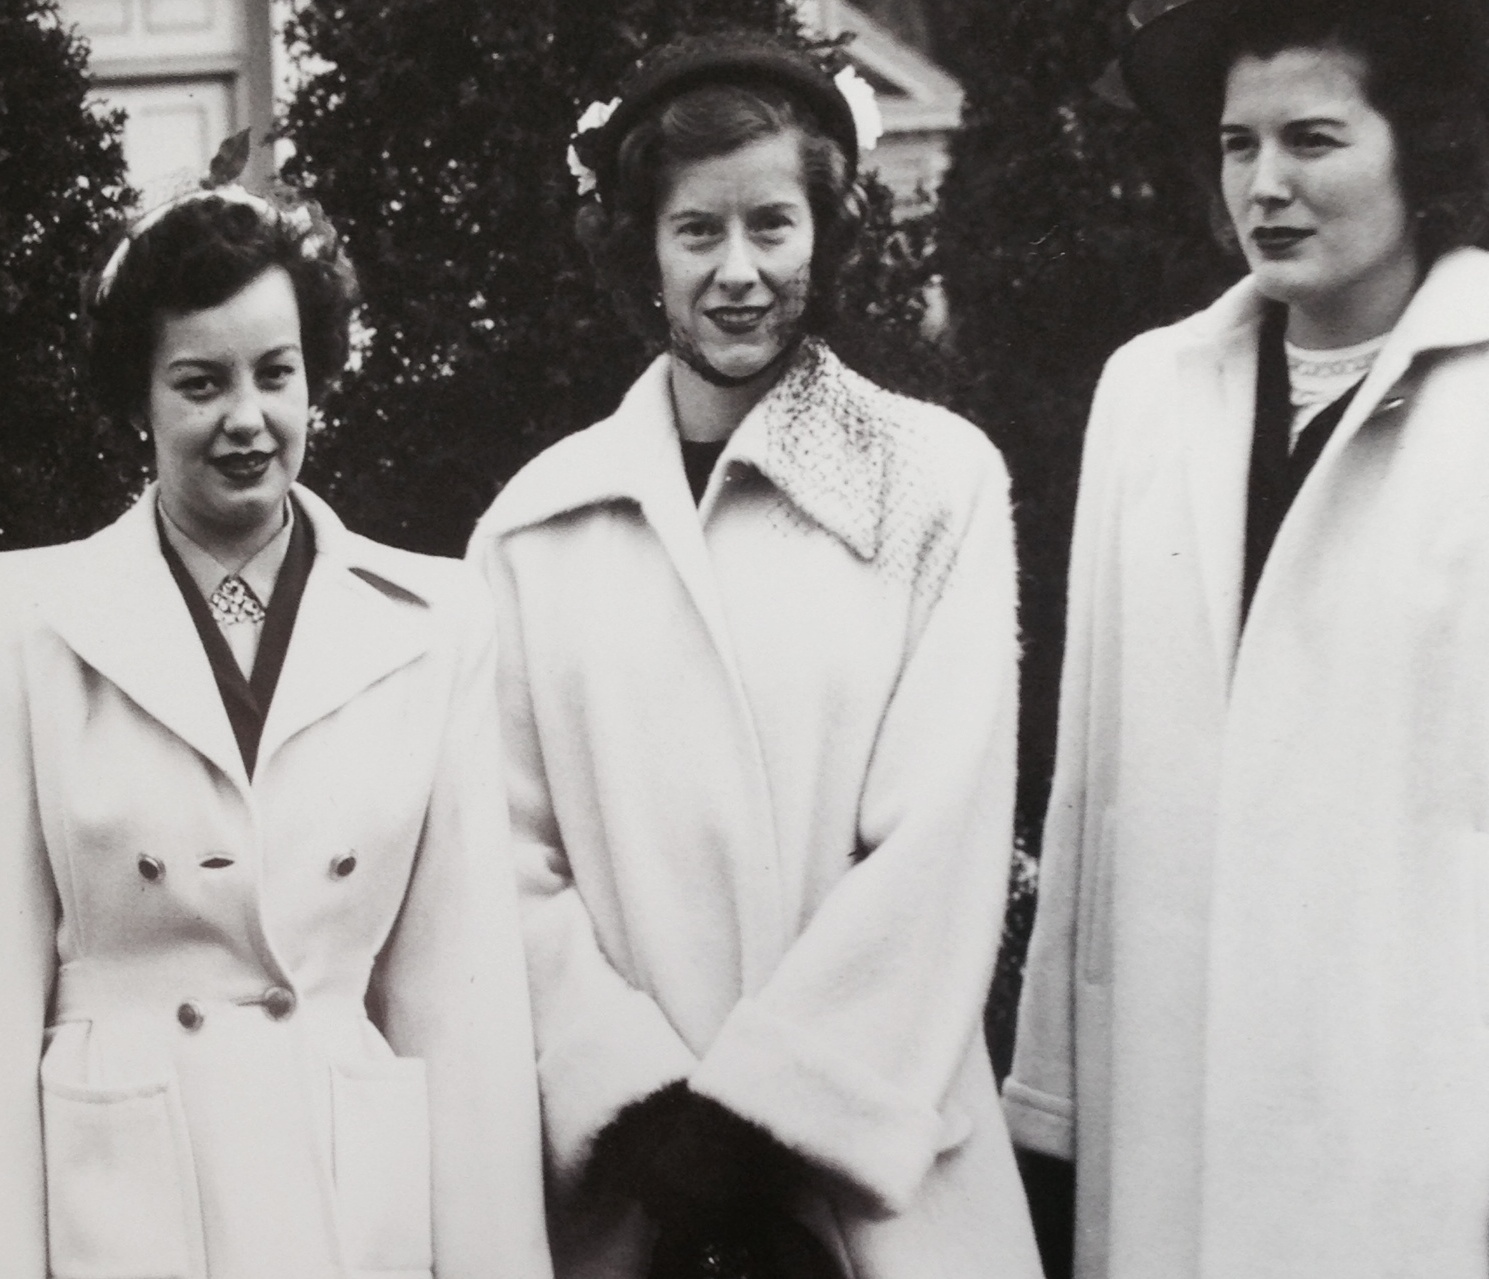 My father's photo of Mom in the middle surrounded by her girlfriends in Ohio.